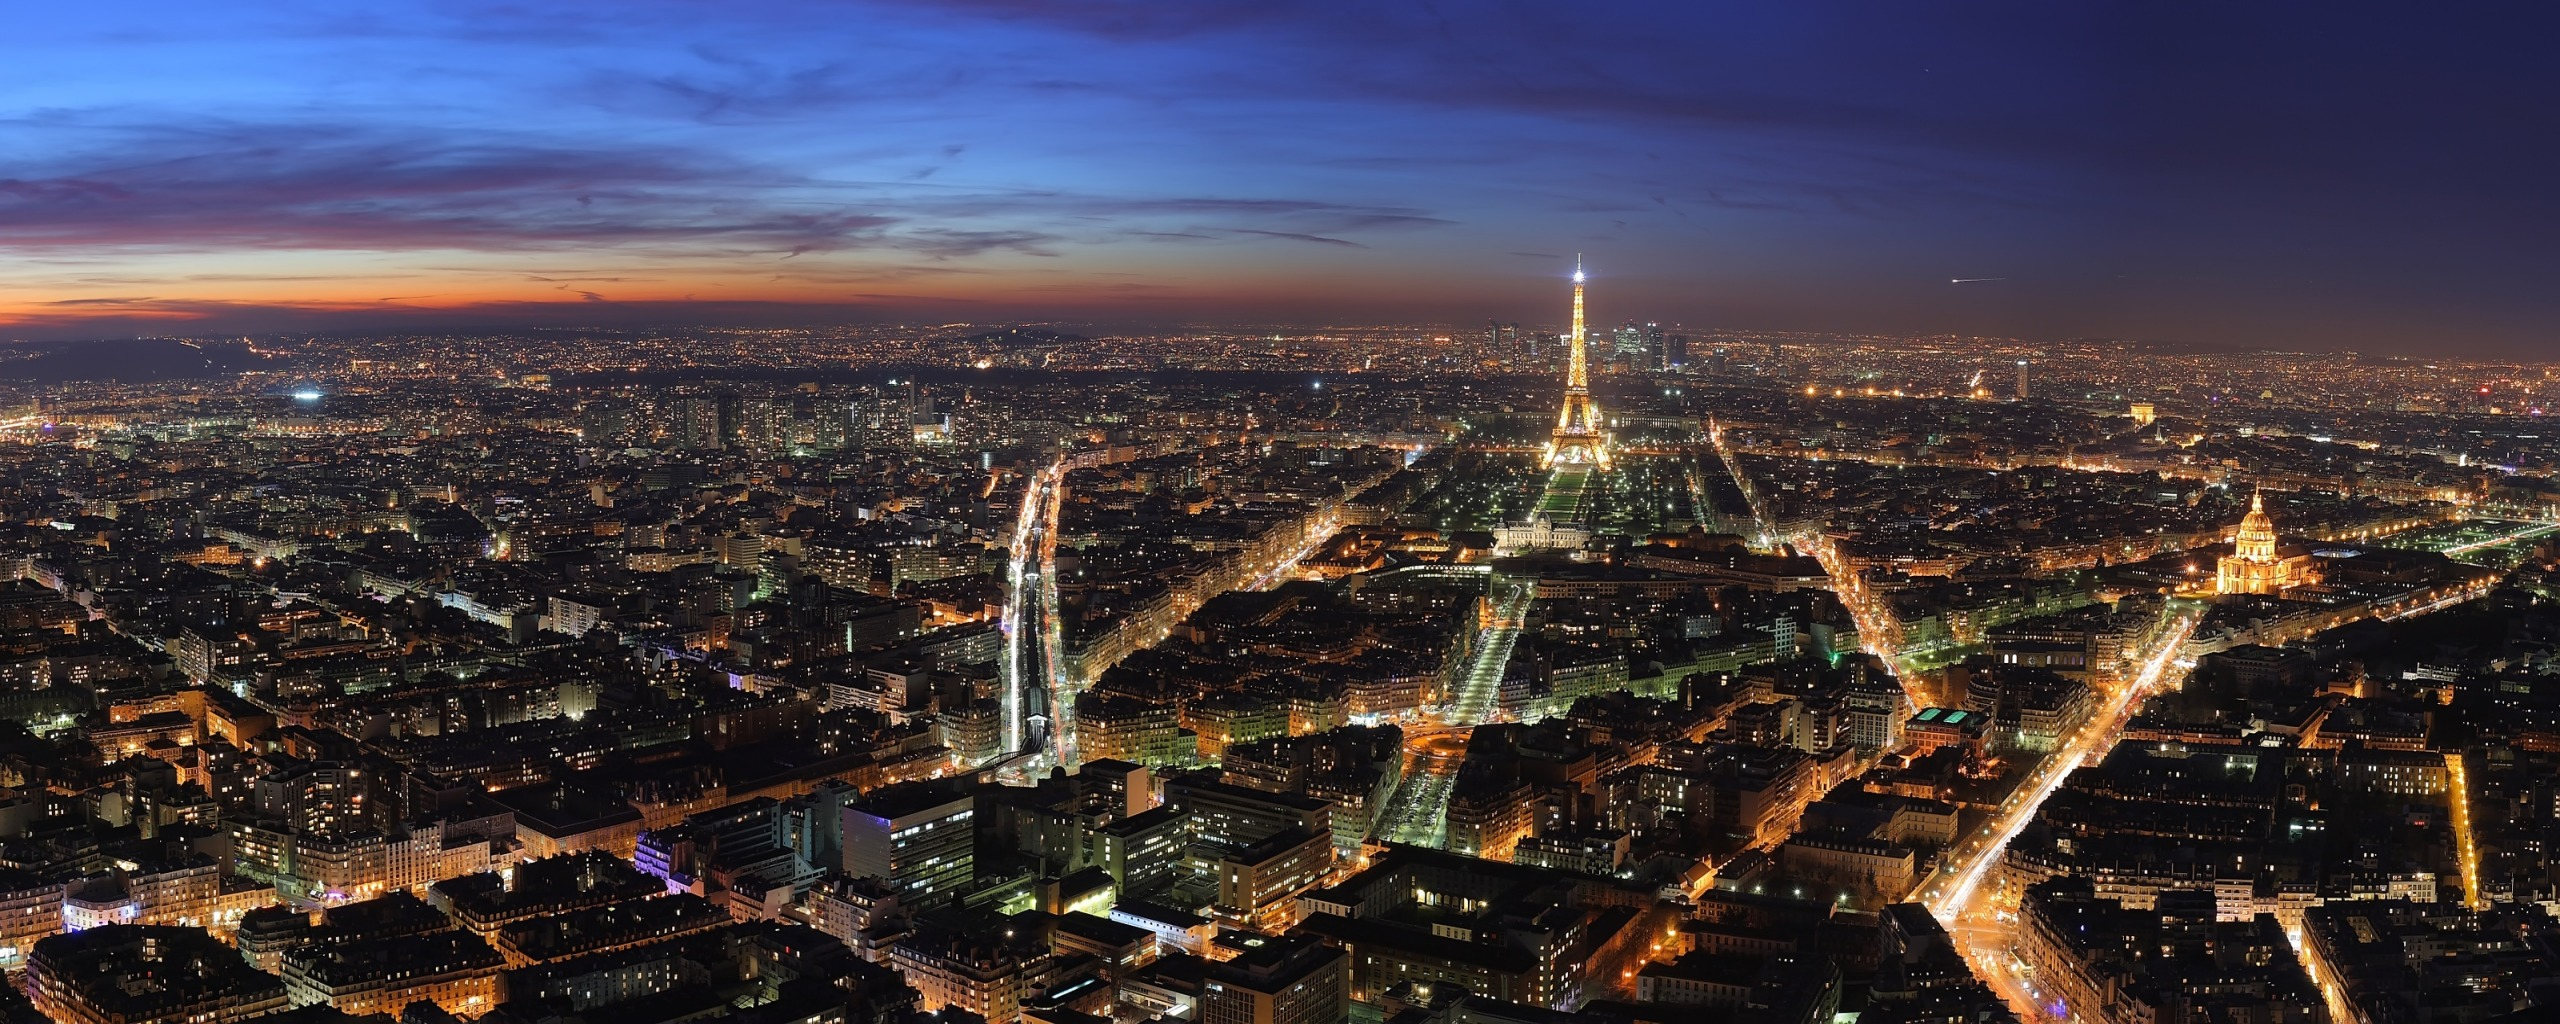 Simple Wallpaper Night Dual Monitor - paris_at_night_dual_monitor-dual_wallpapers  You Should Have.jpg